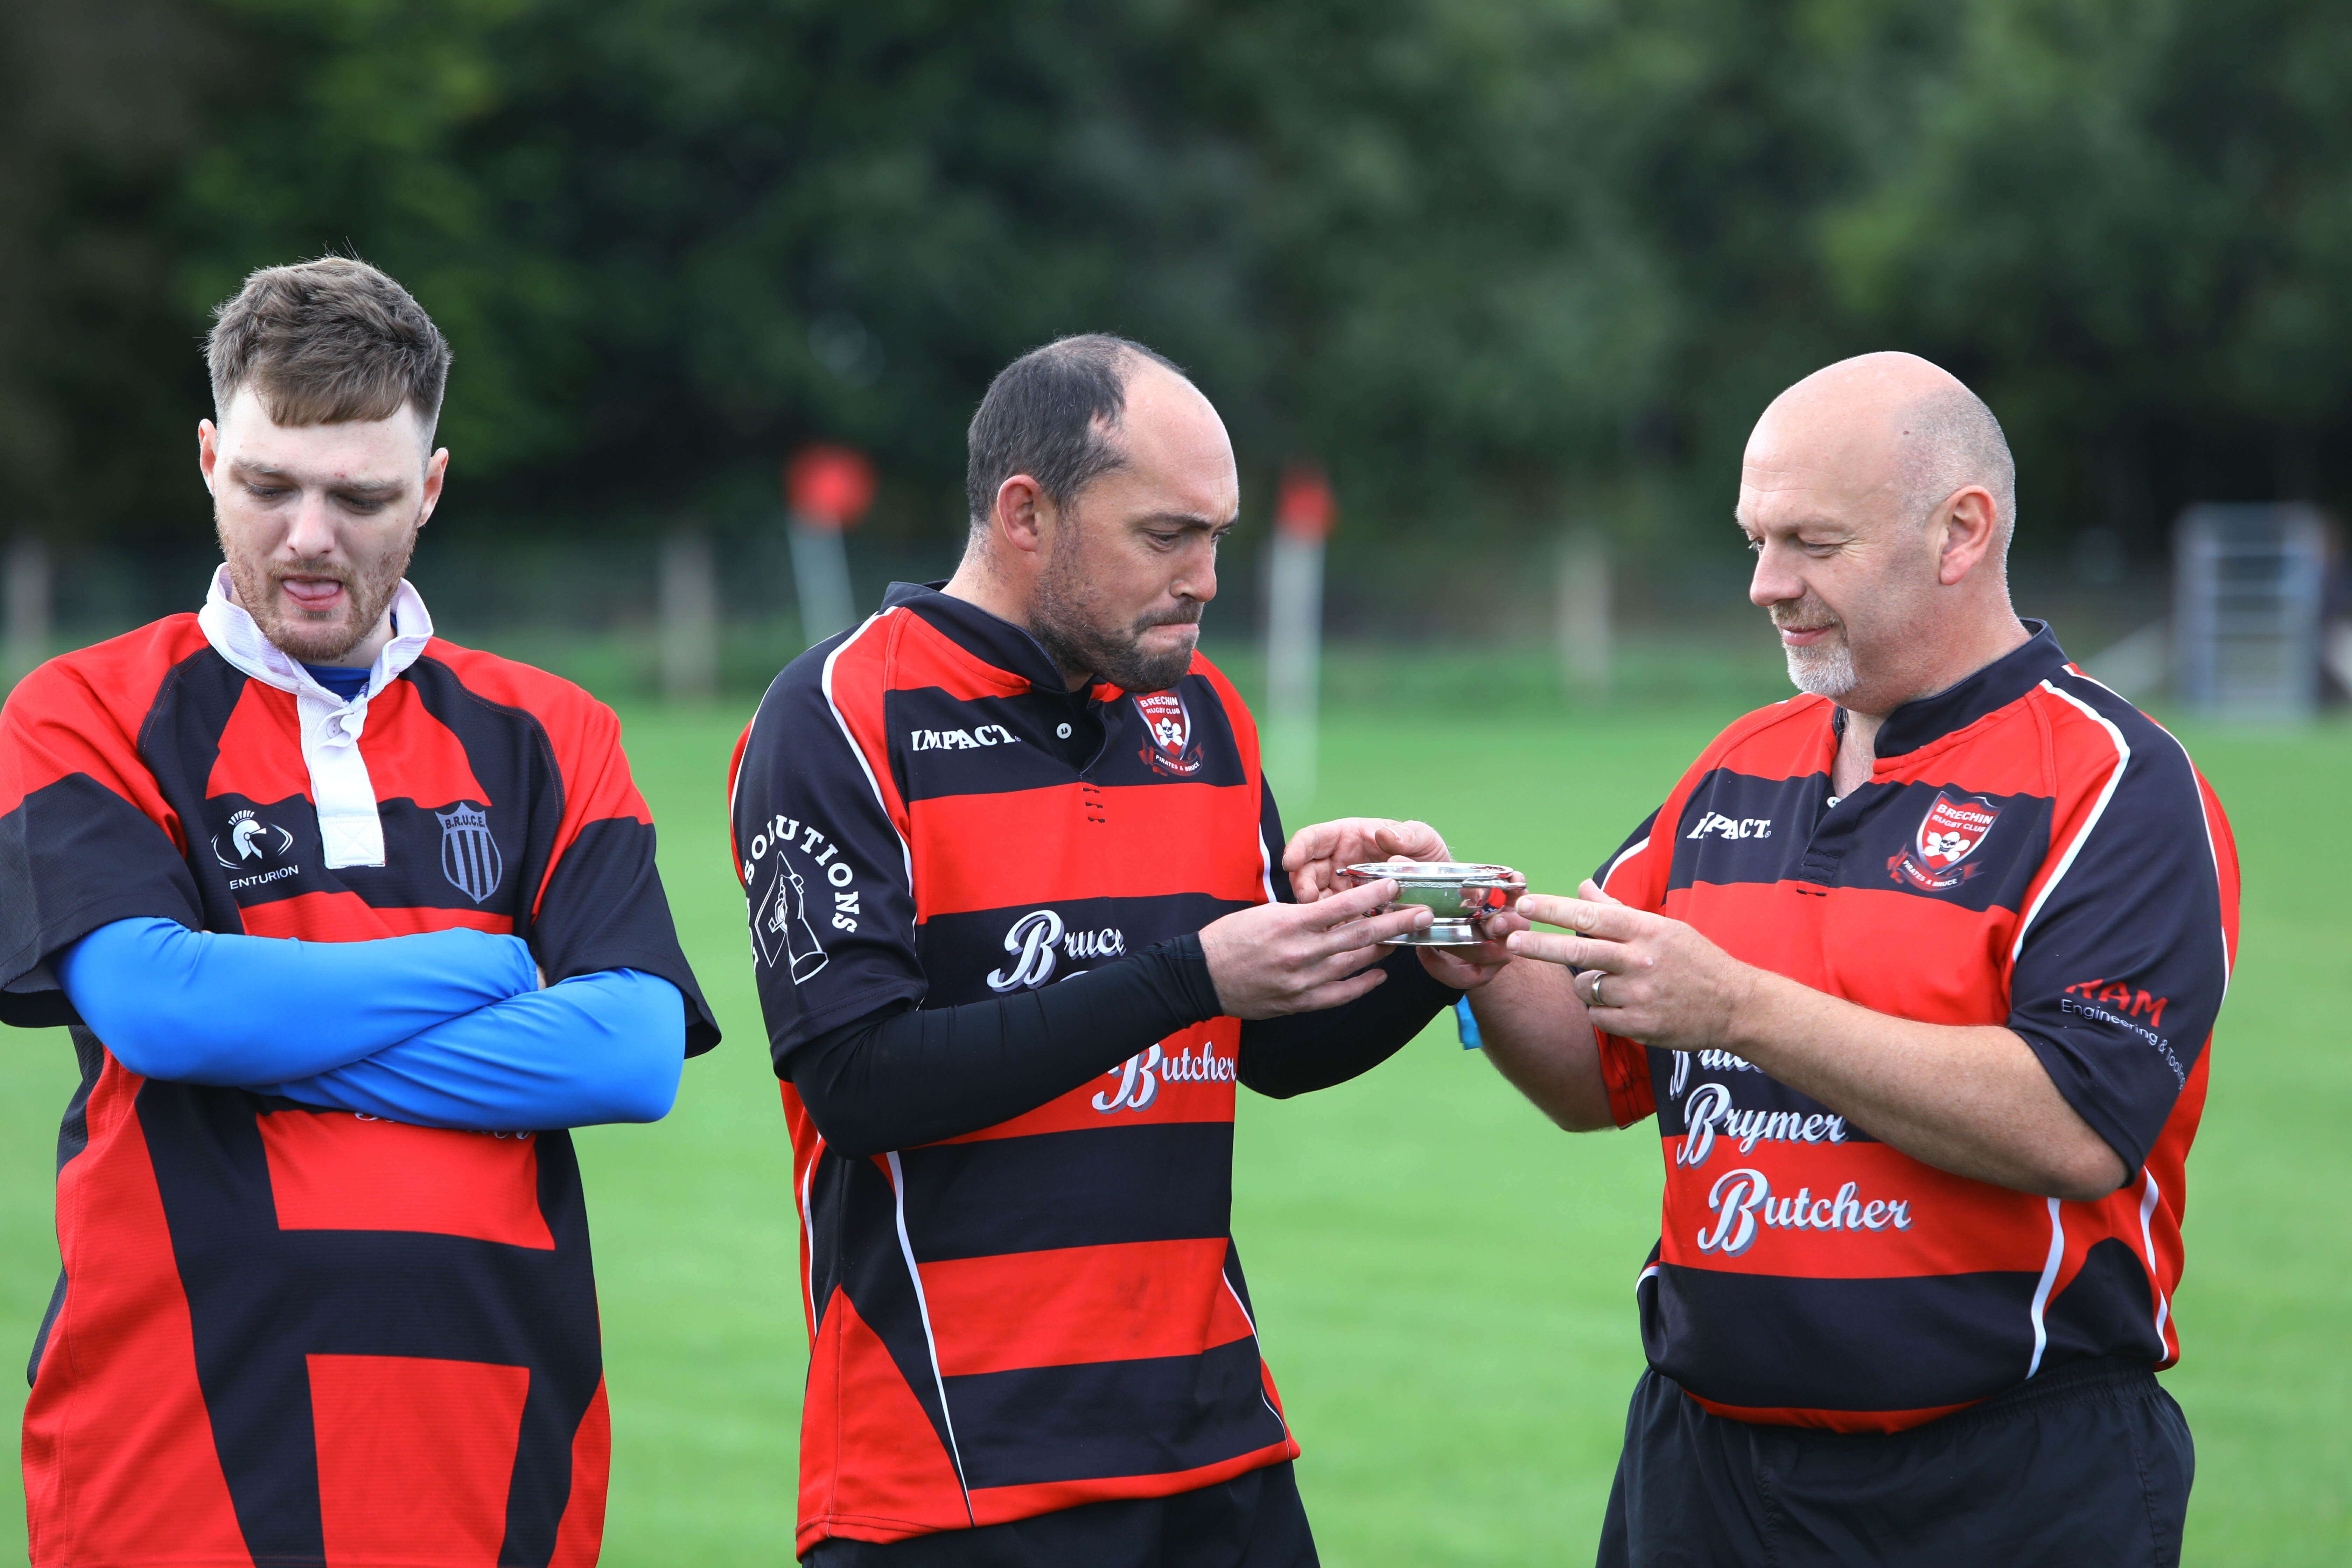 Players take a drink of whisky from the quaich, before the first game on the new Brechin Rugby Club pitch.